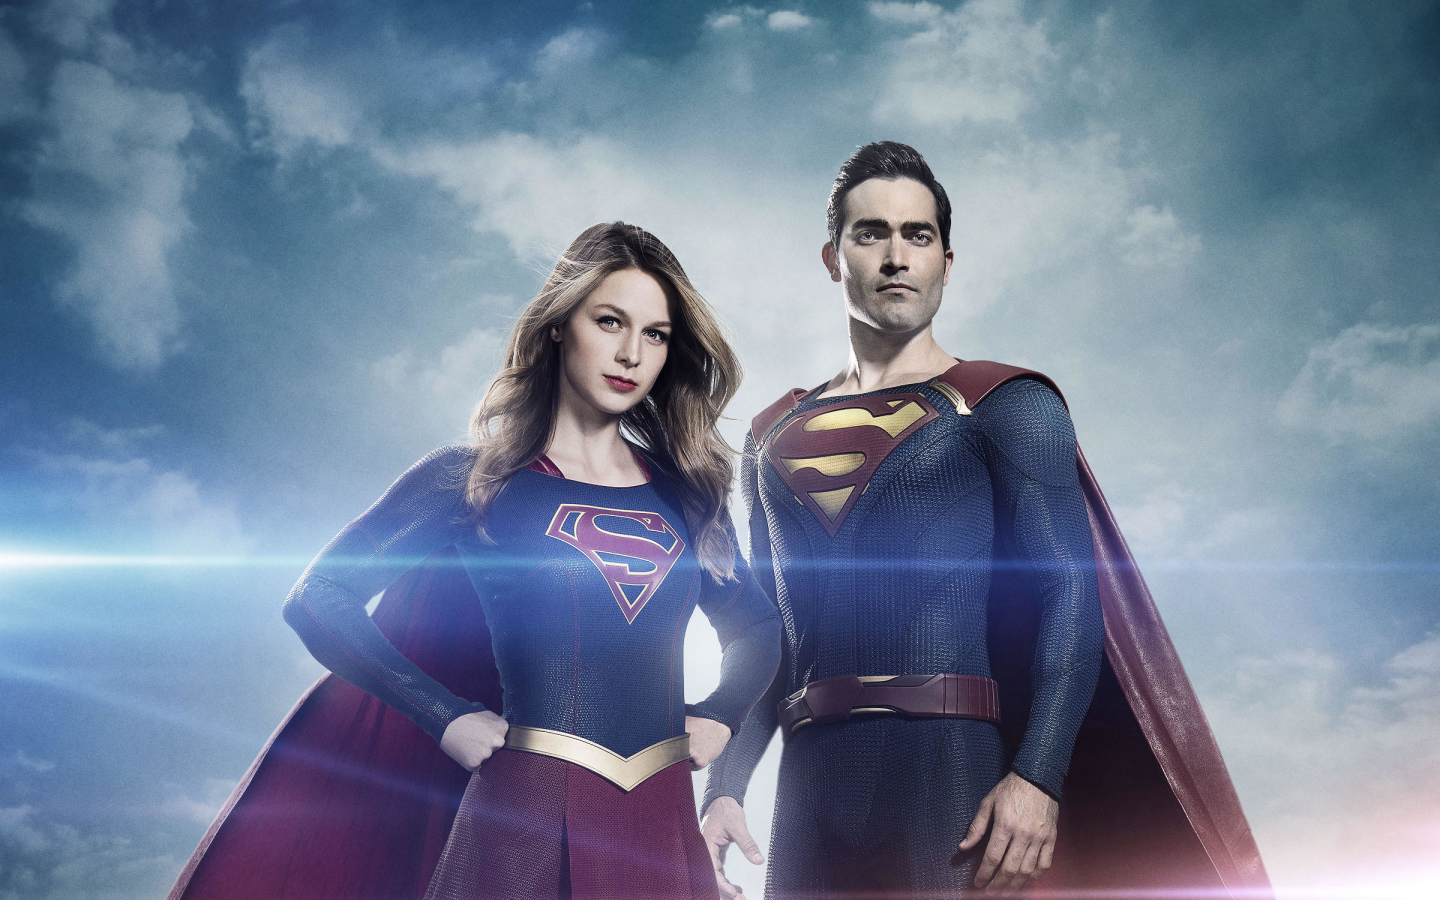 Supergirl and Superman Arrowverse Wallpaper in 1440x900 Resolution